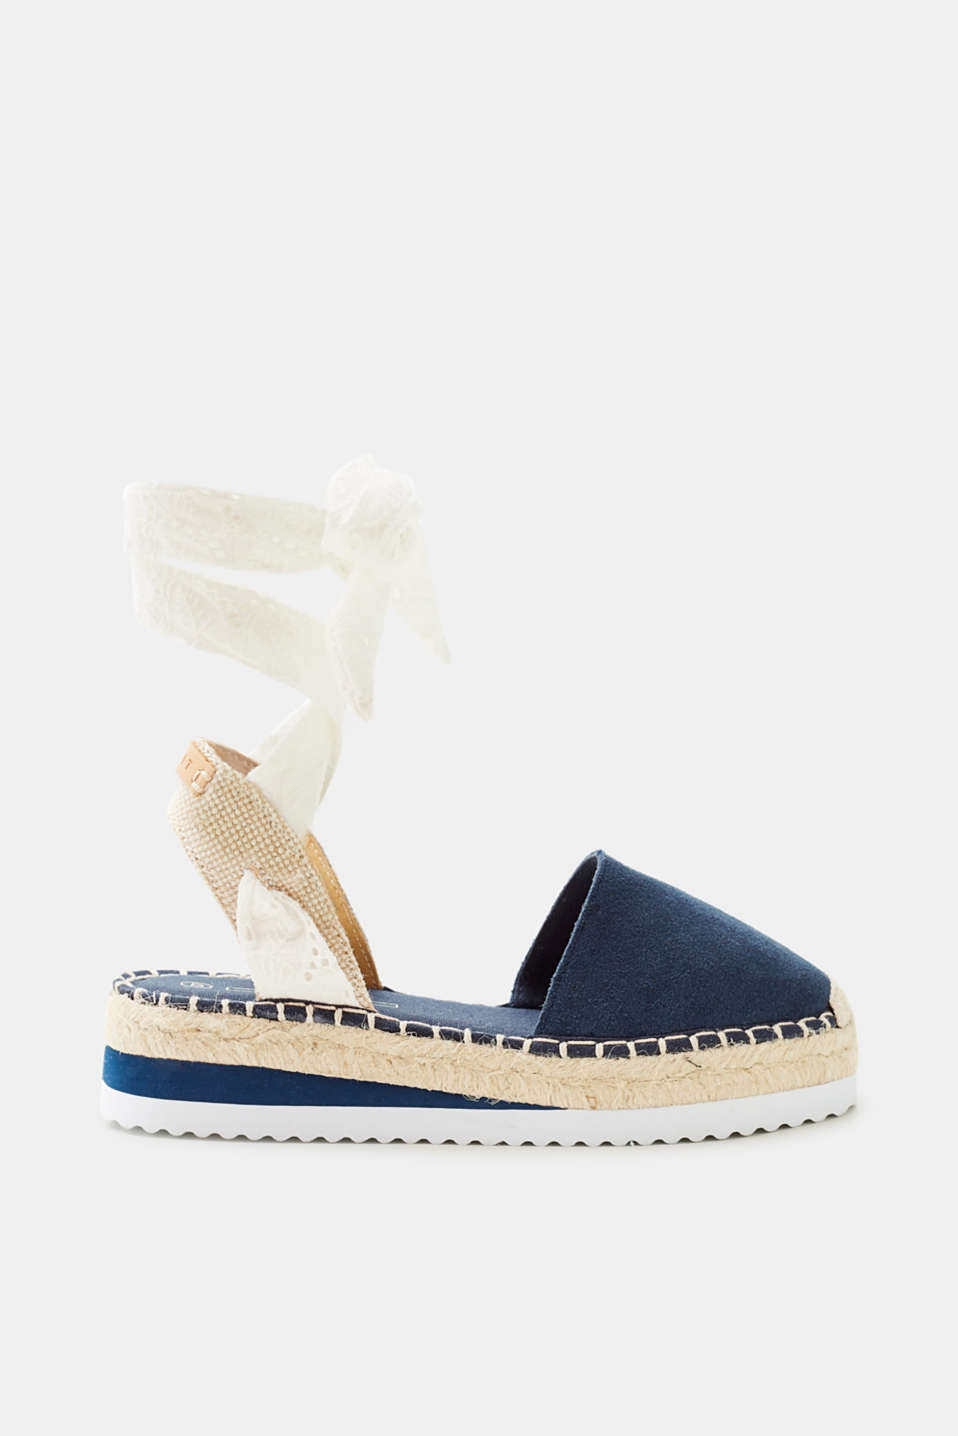 A summer classic: espadrilles - here they are enhanced by genuine leather + platform soles made of bast and rubber.